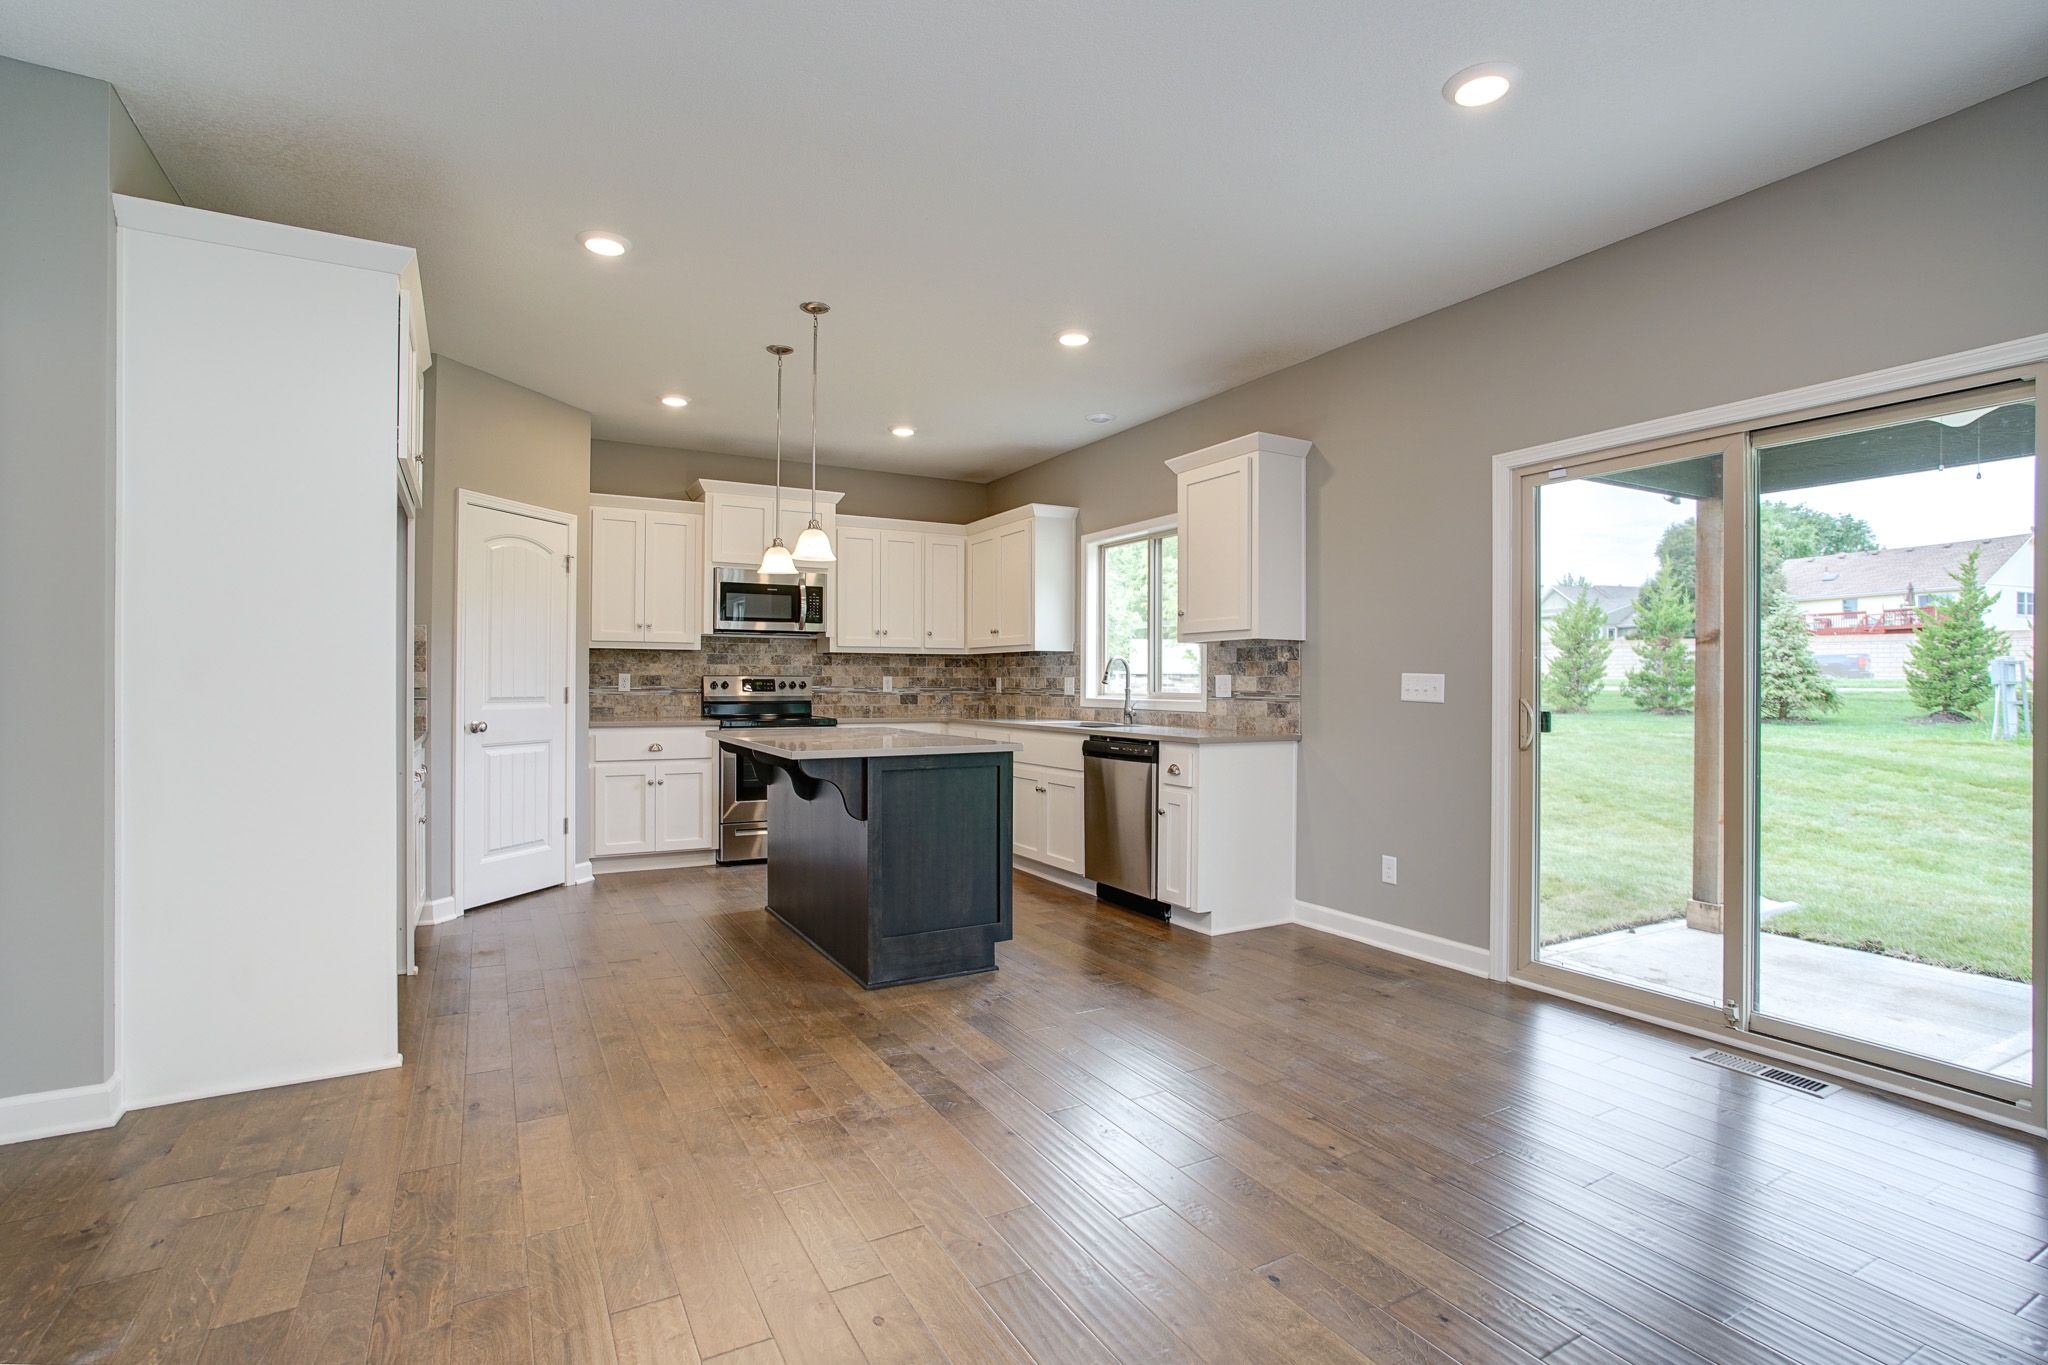 Kitchen featured in the Woodbridge By Summit Homes in Kansas City, MO